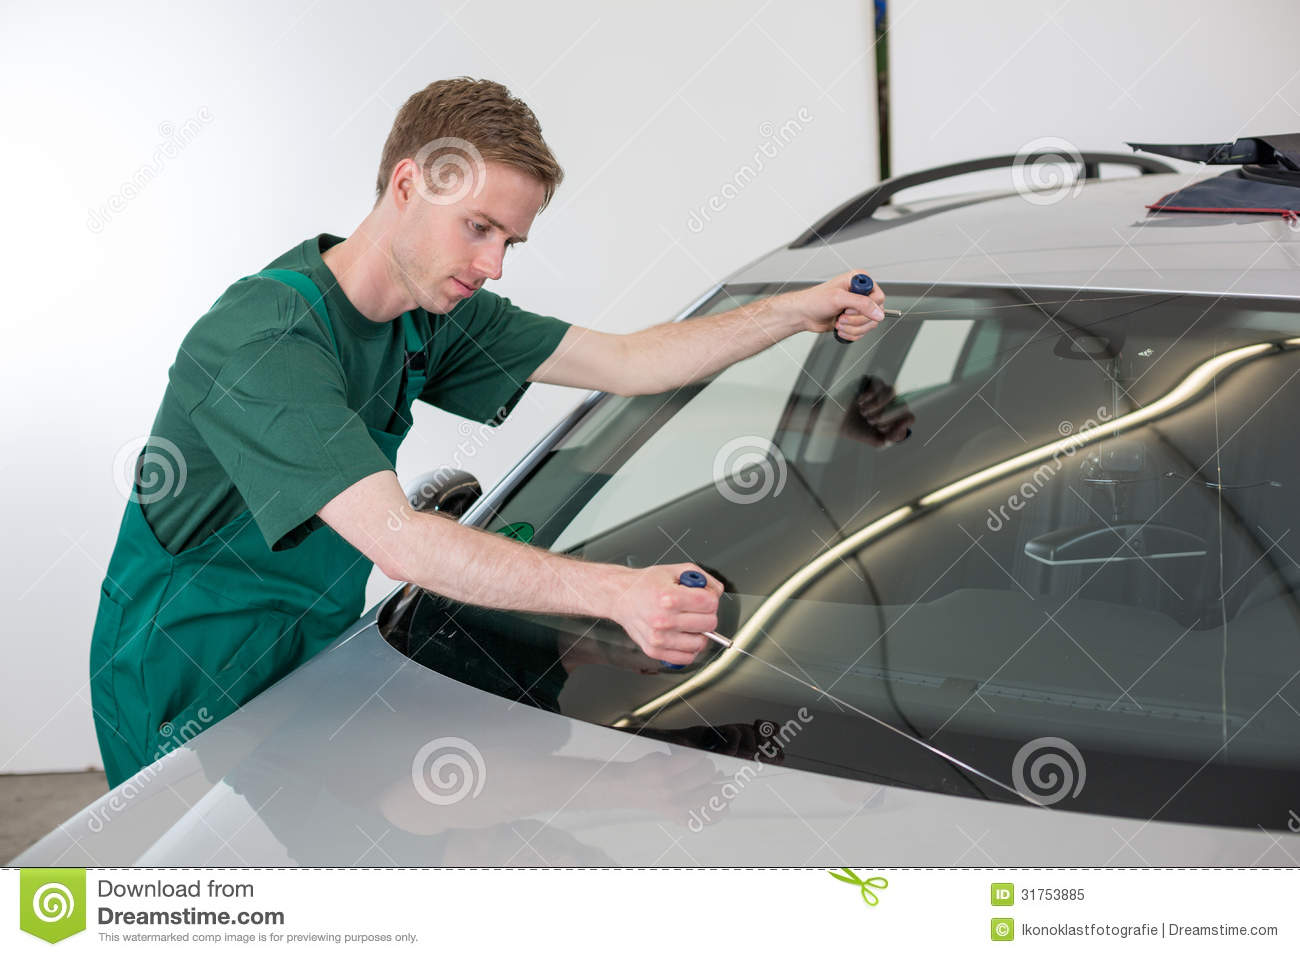 Glazier Removing Windshield Stock Image - Image of glazier ...